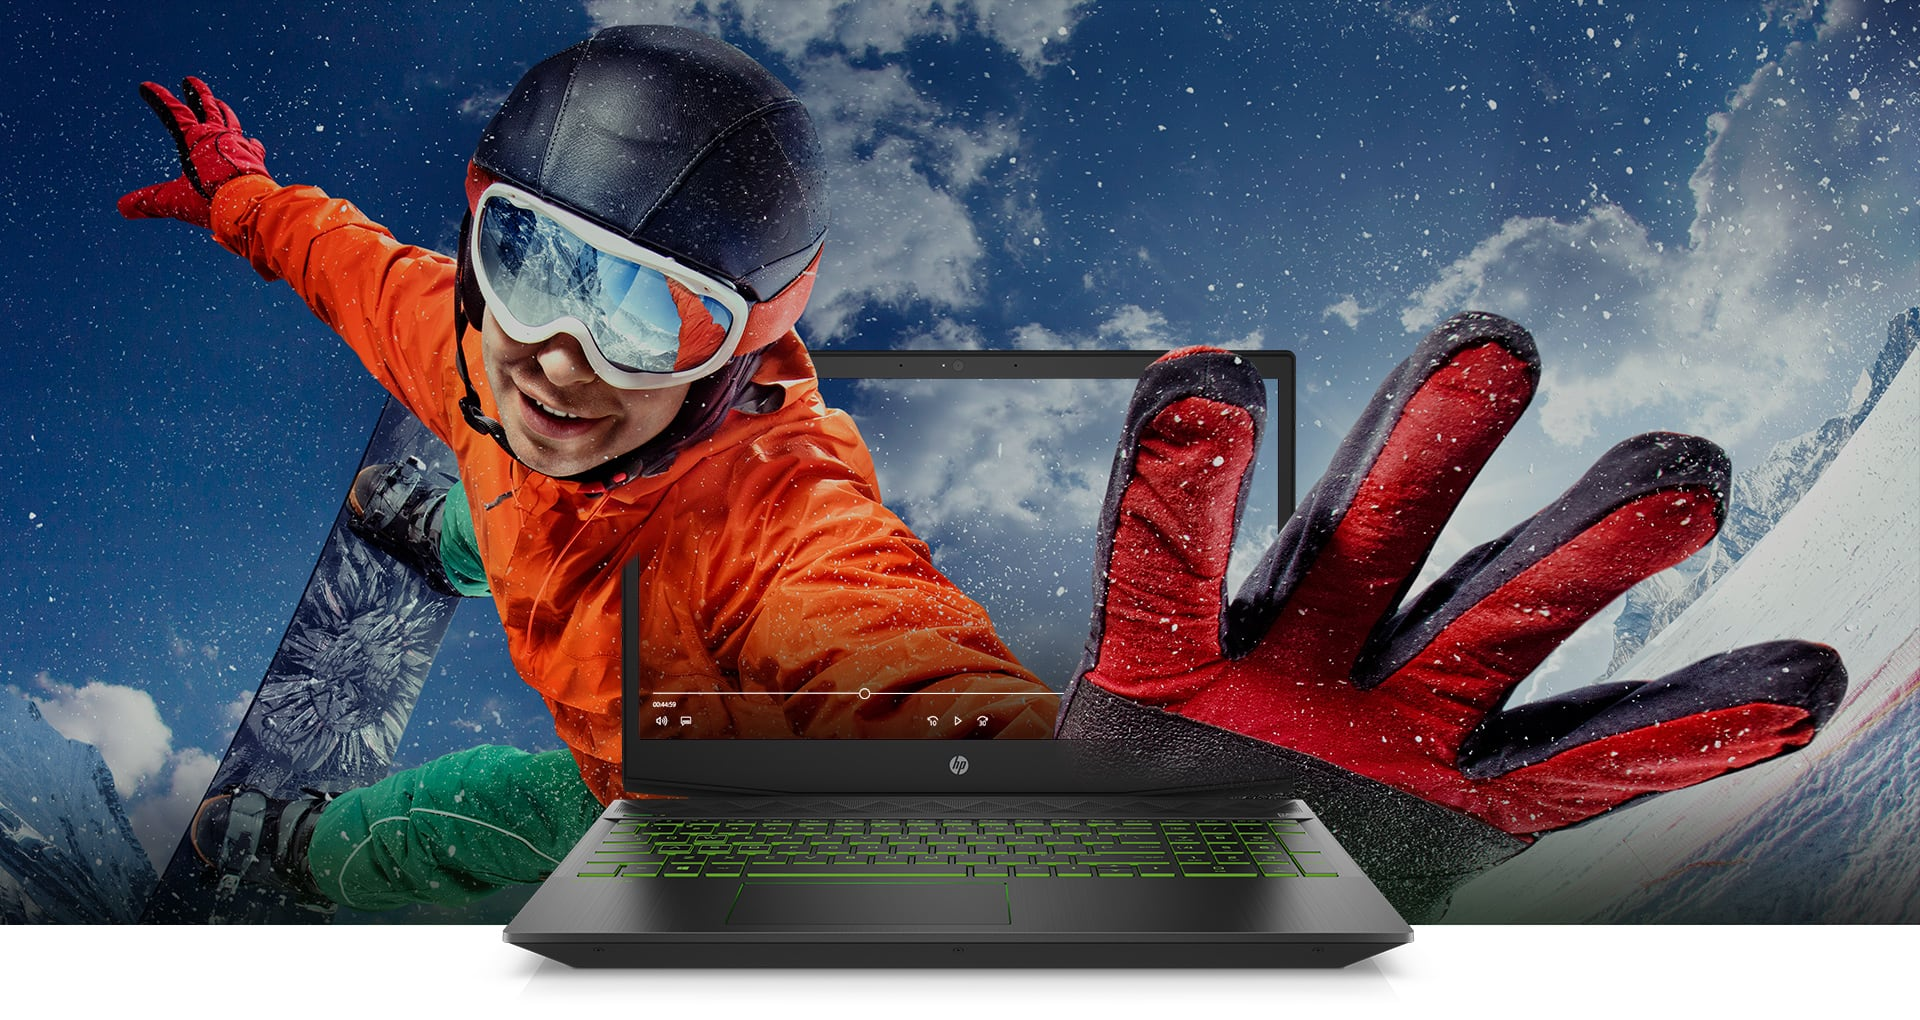 Pavilion Laptop  with skier overlay